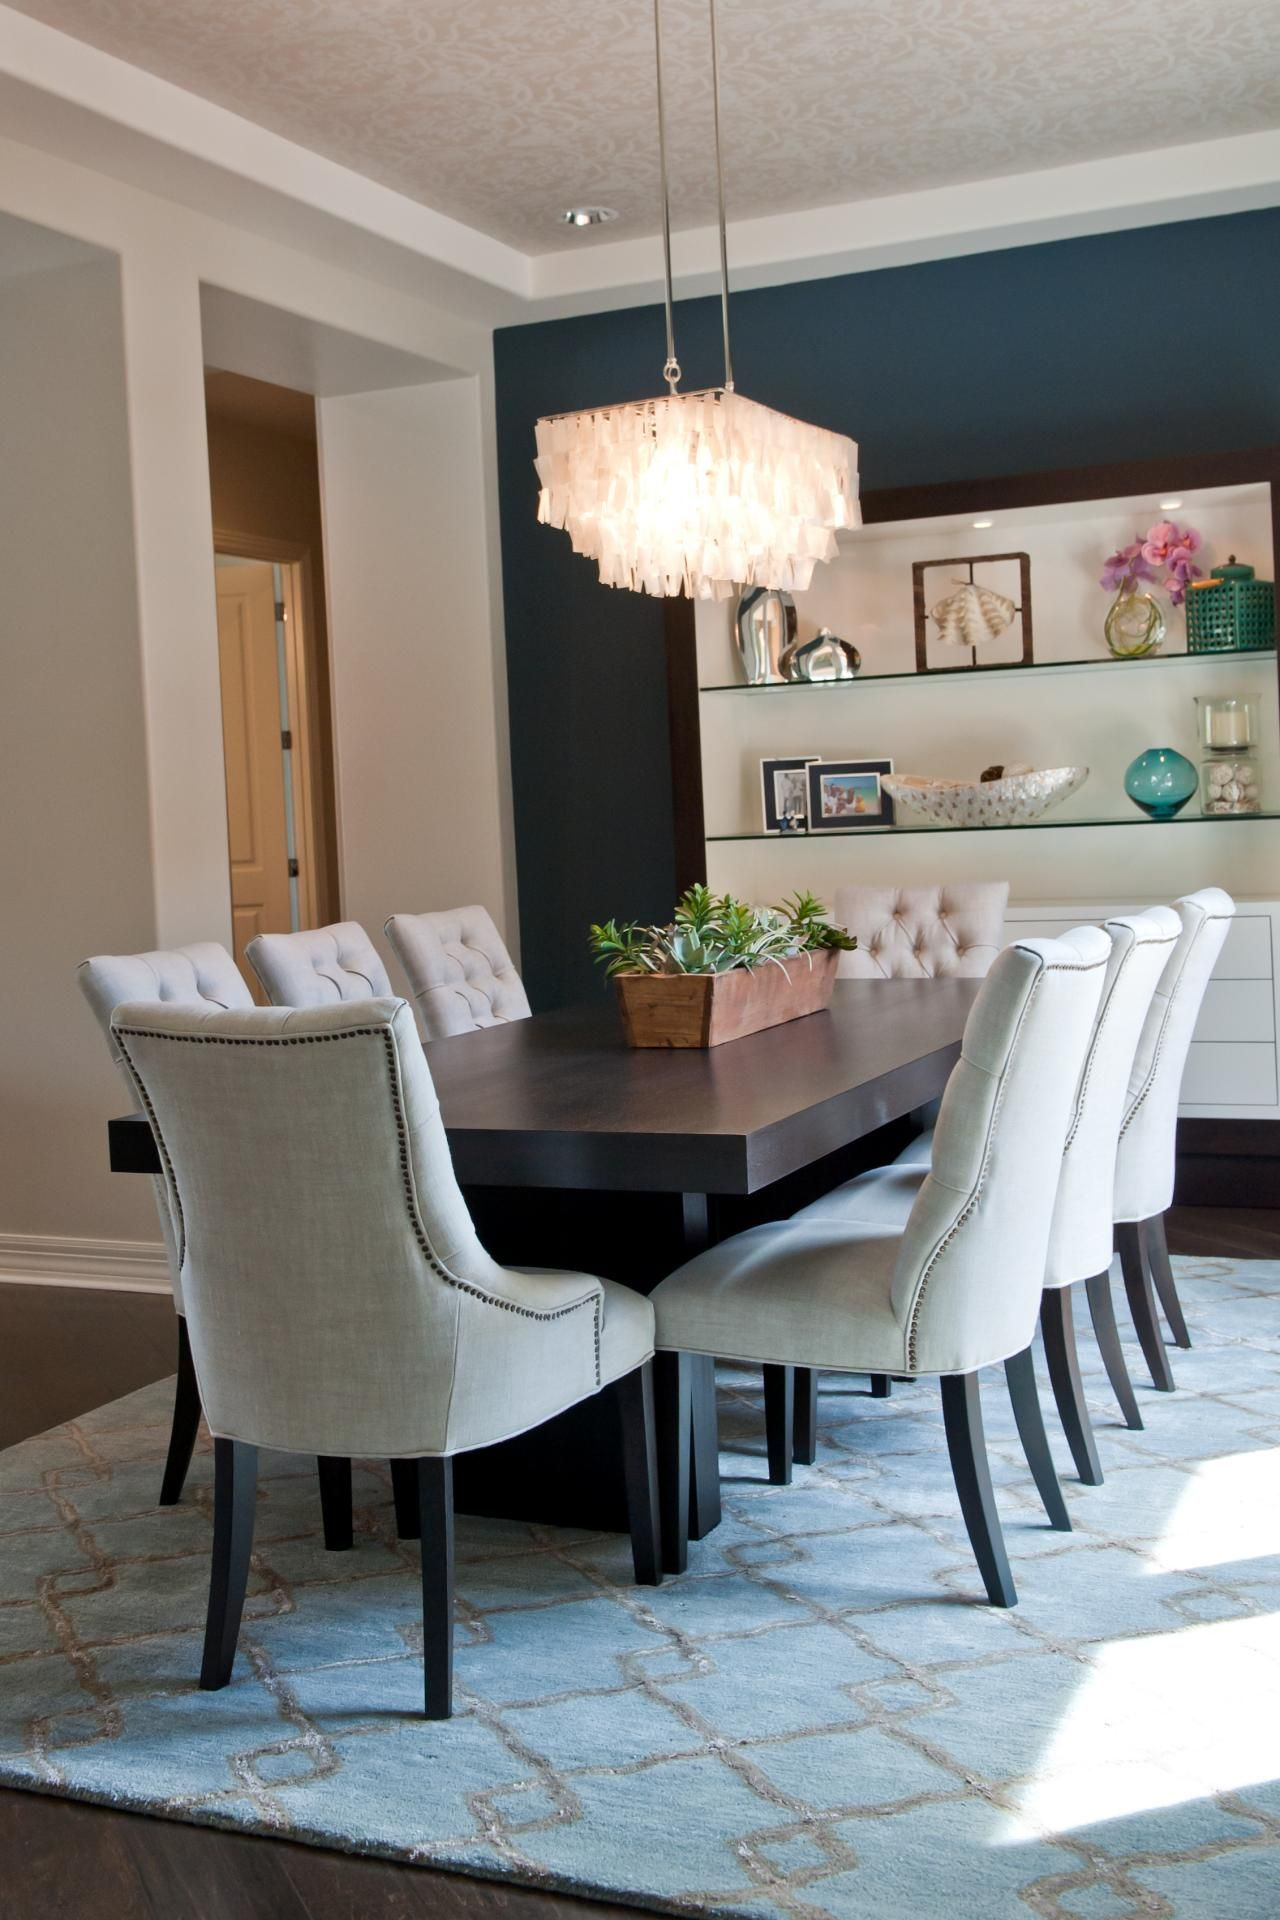 Eight Off White Tufted Chairs Surround A Dark Wood Table In This